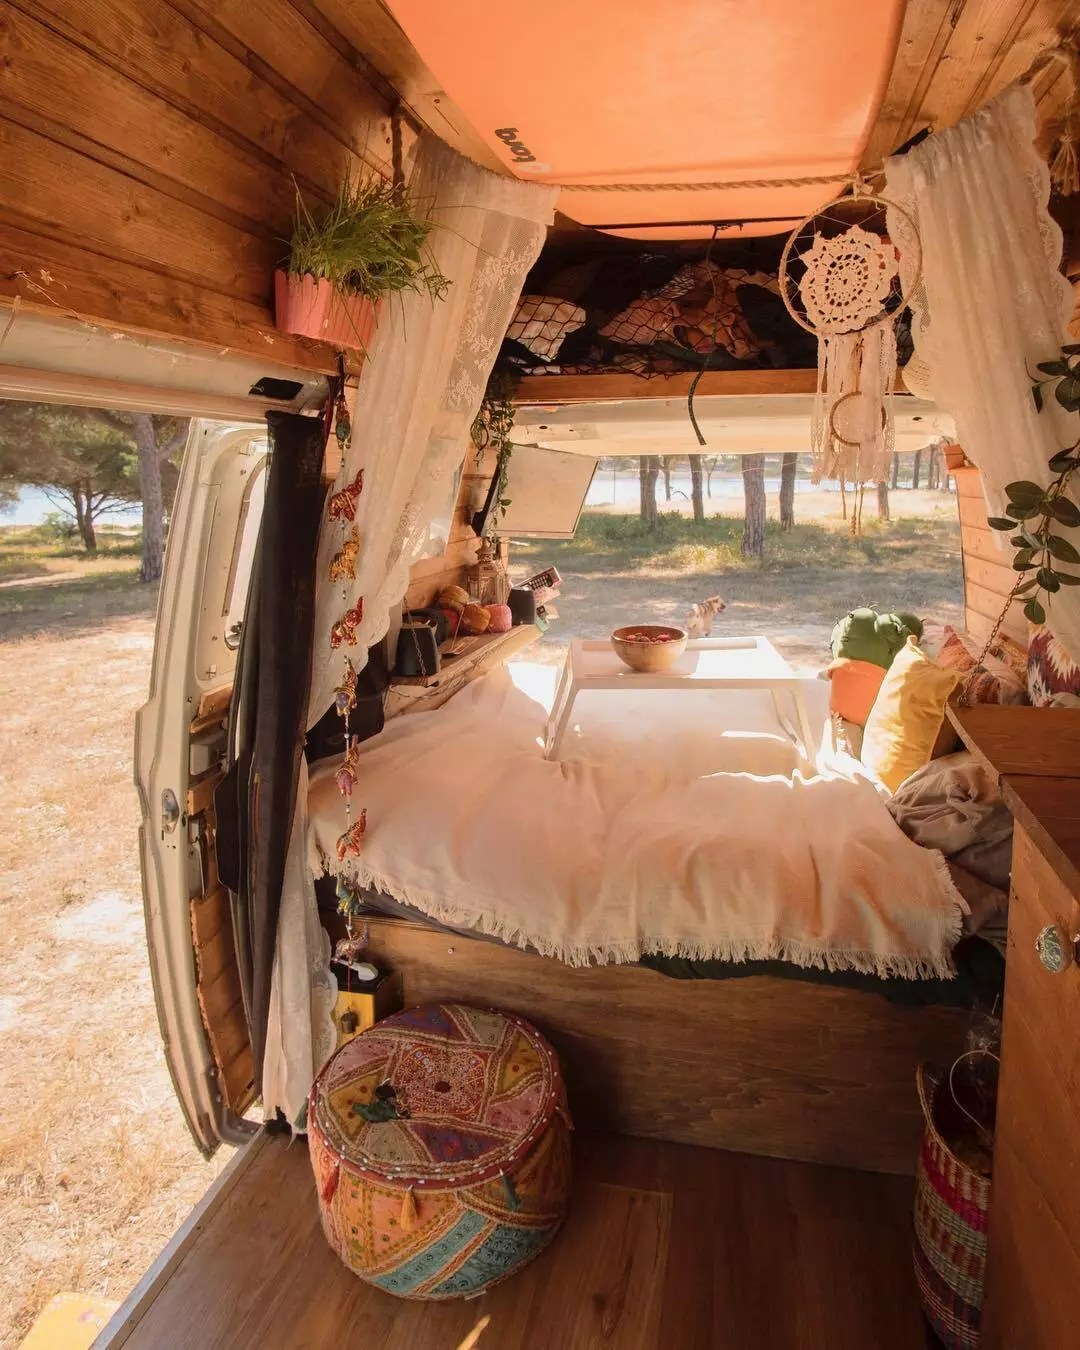 17 Van Design Decoration Ideas For Living On The Road Extra Space Storage